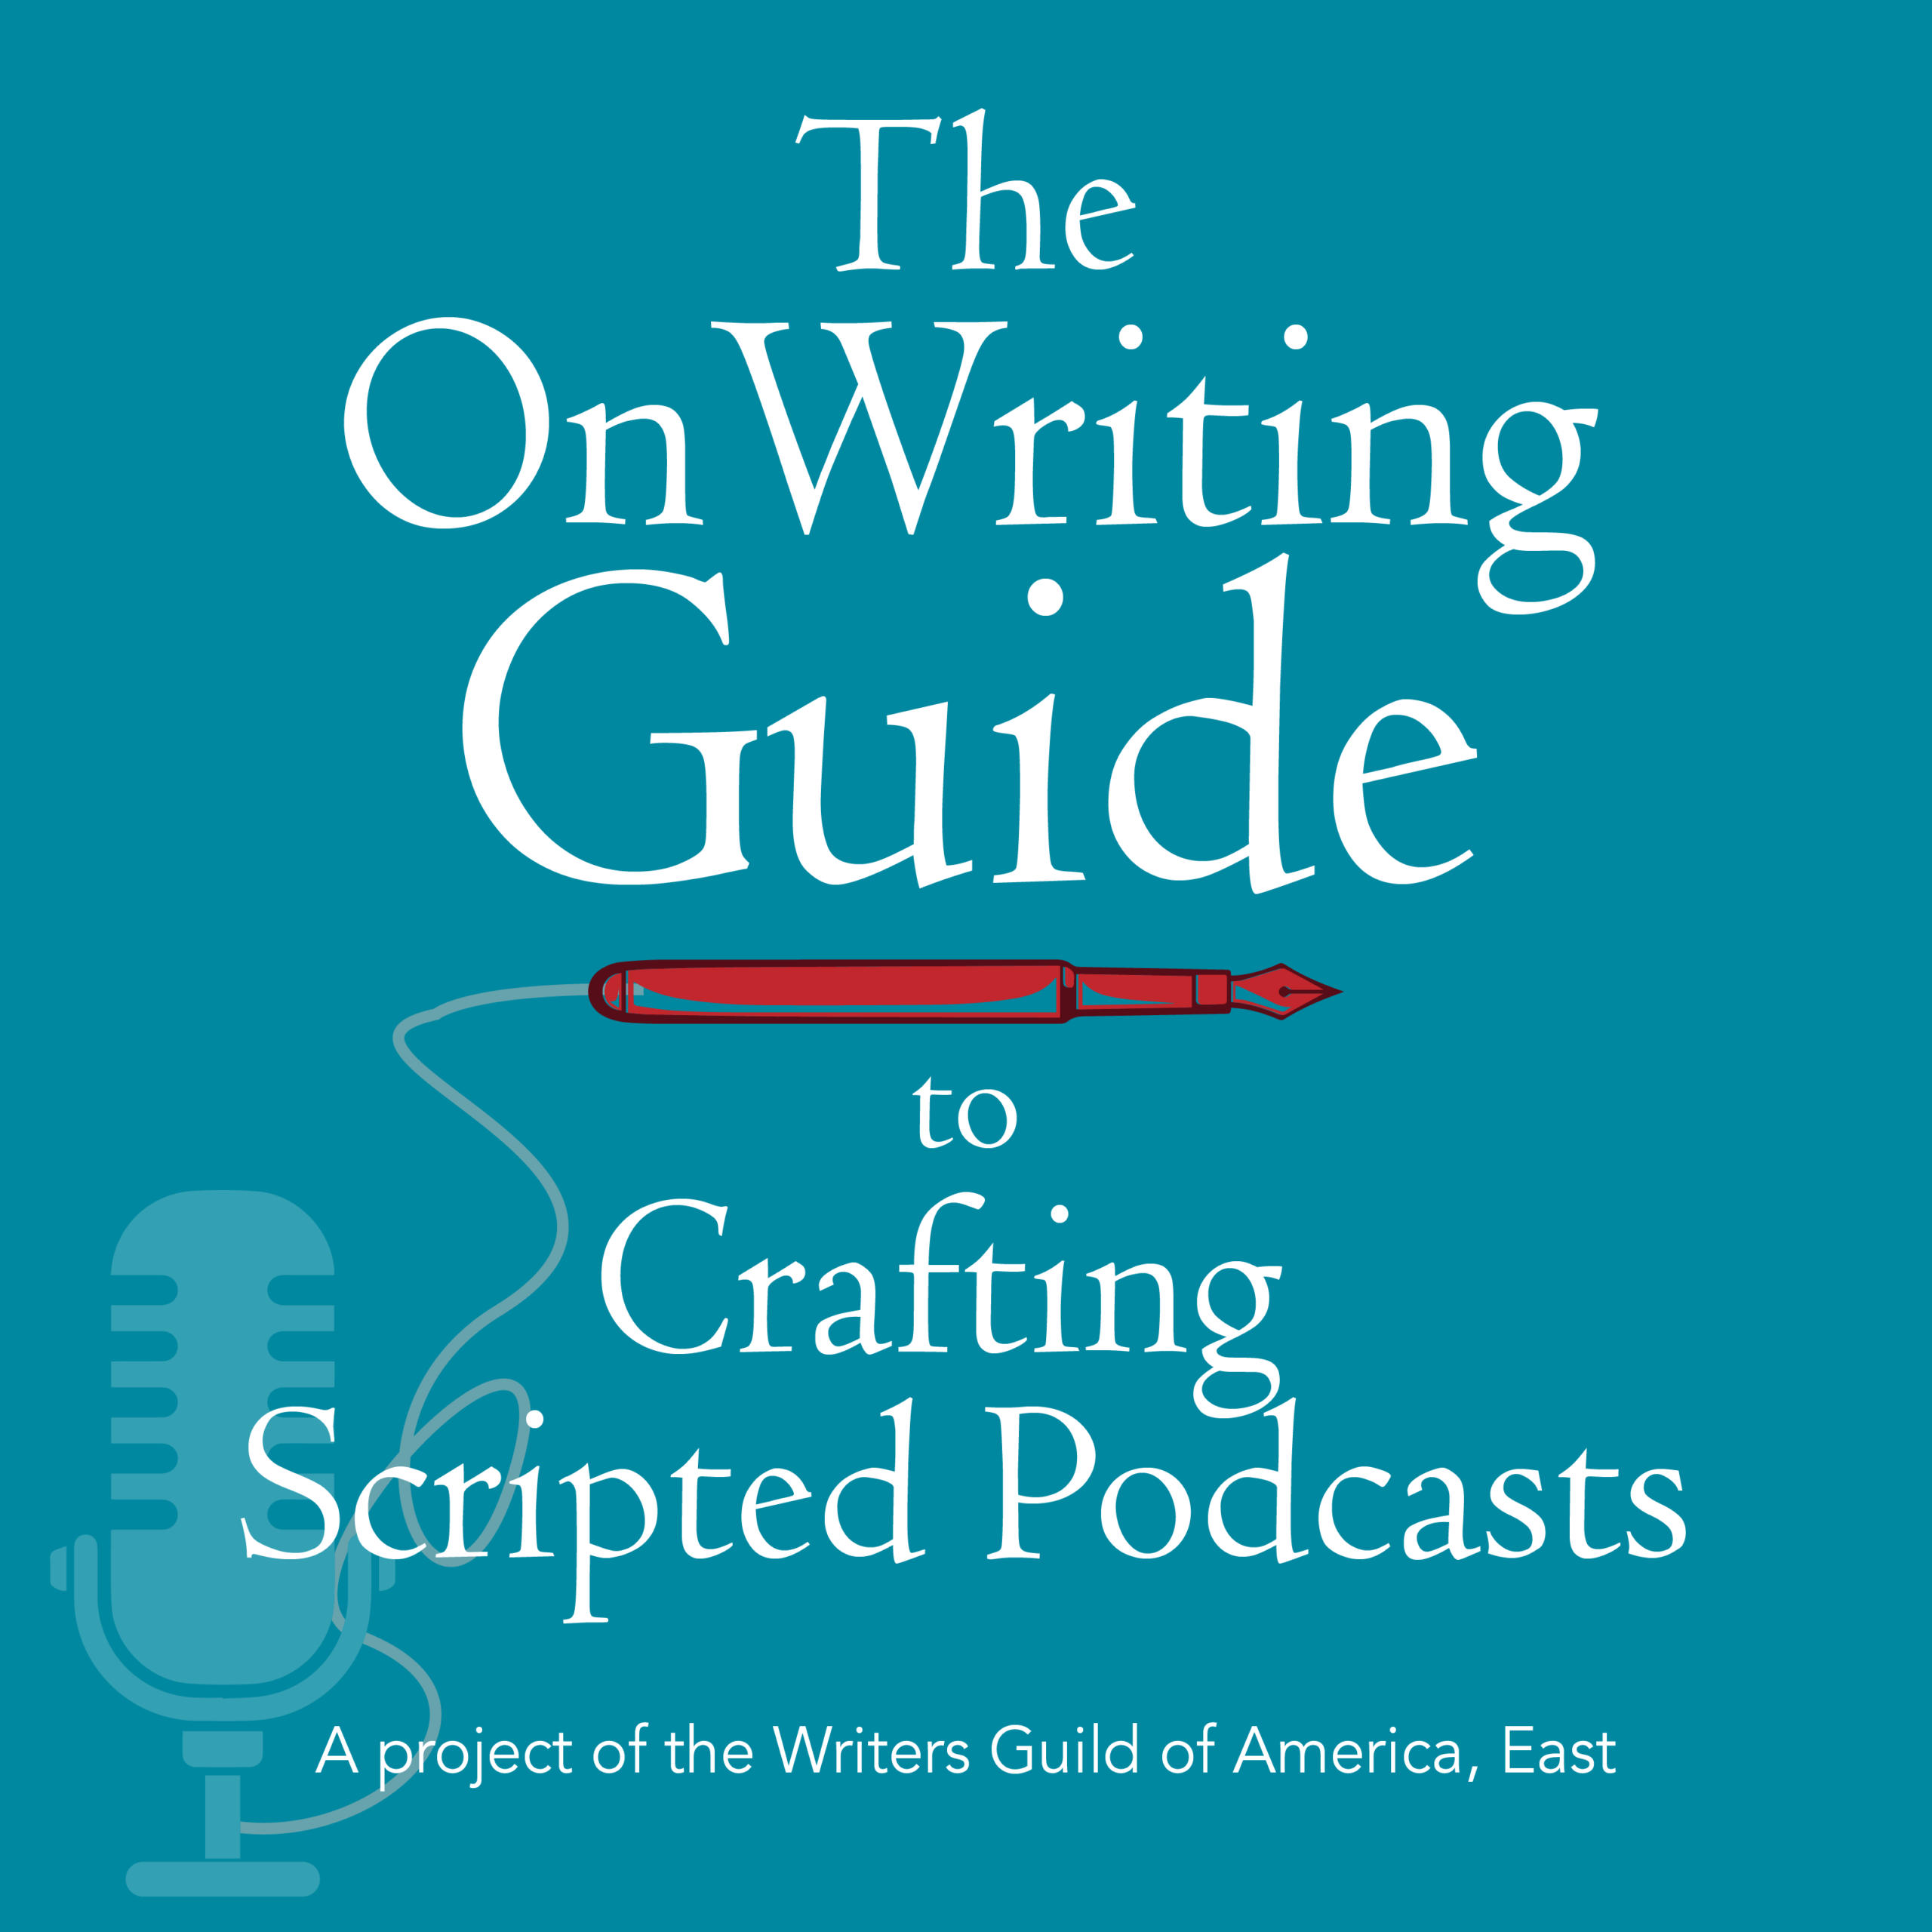 The OnWriting Guide to Crafting Scripted Podcasts logo.